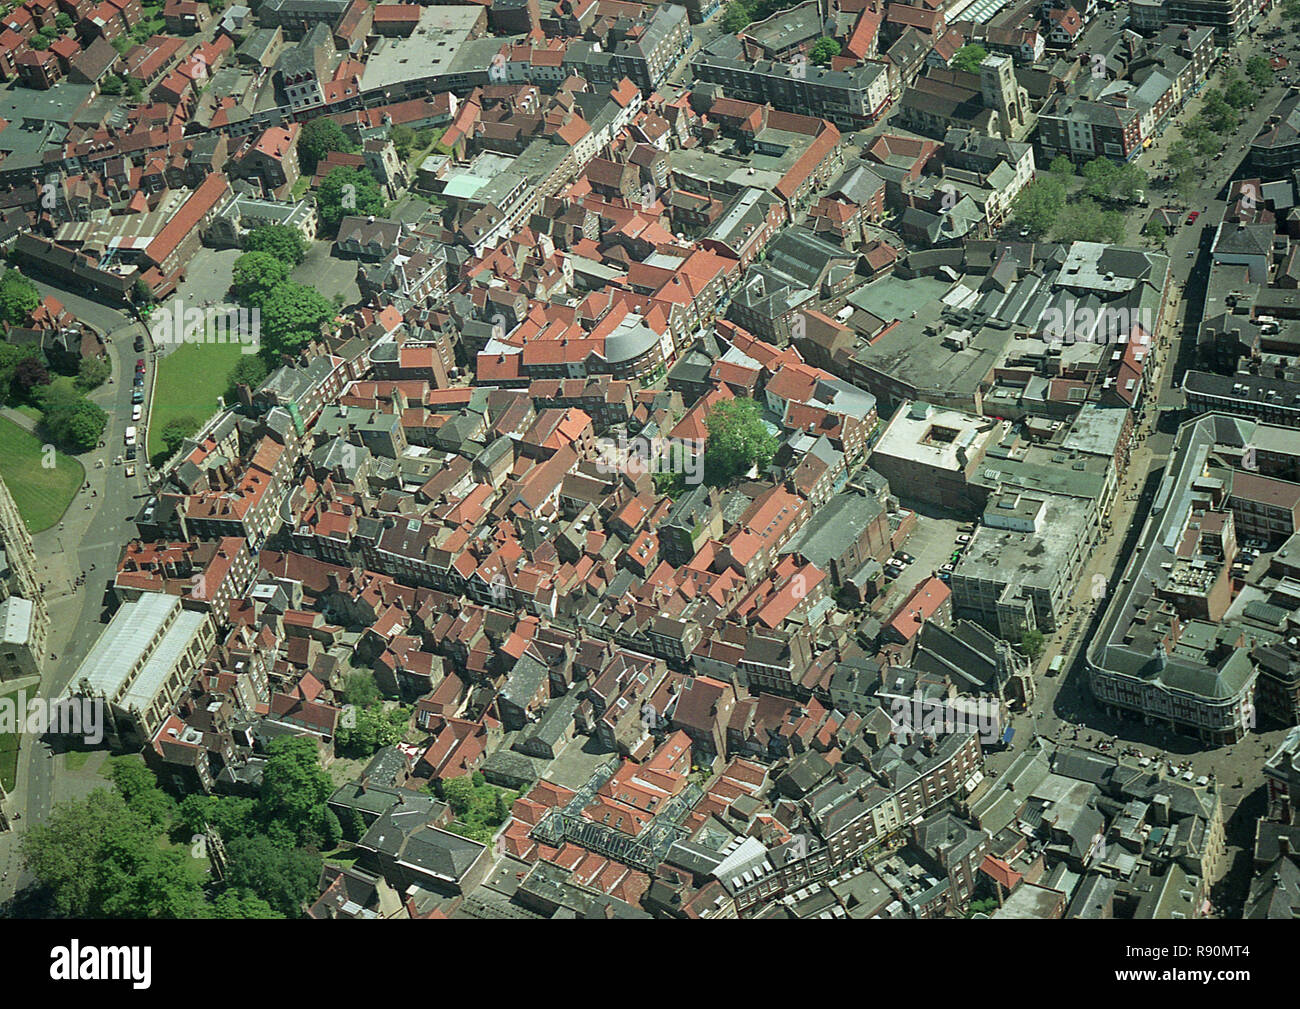 Aerial photo of the centre of the City of York - Stock Image